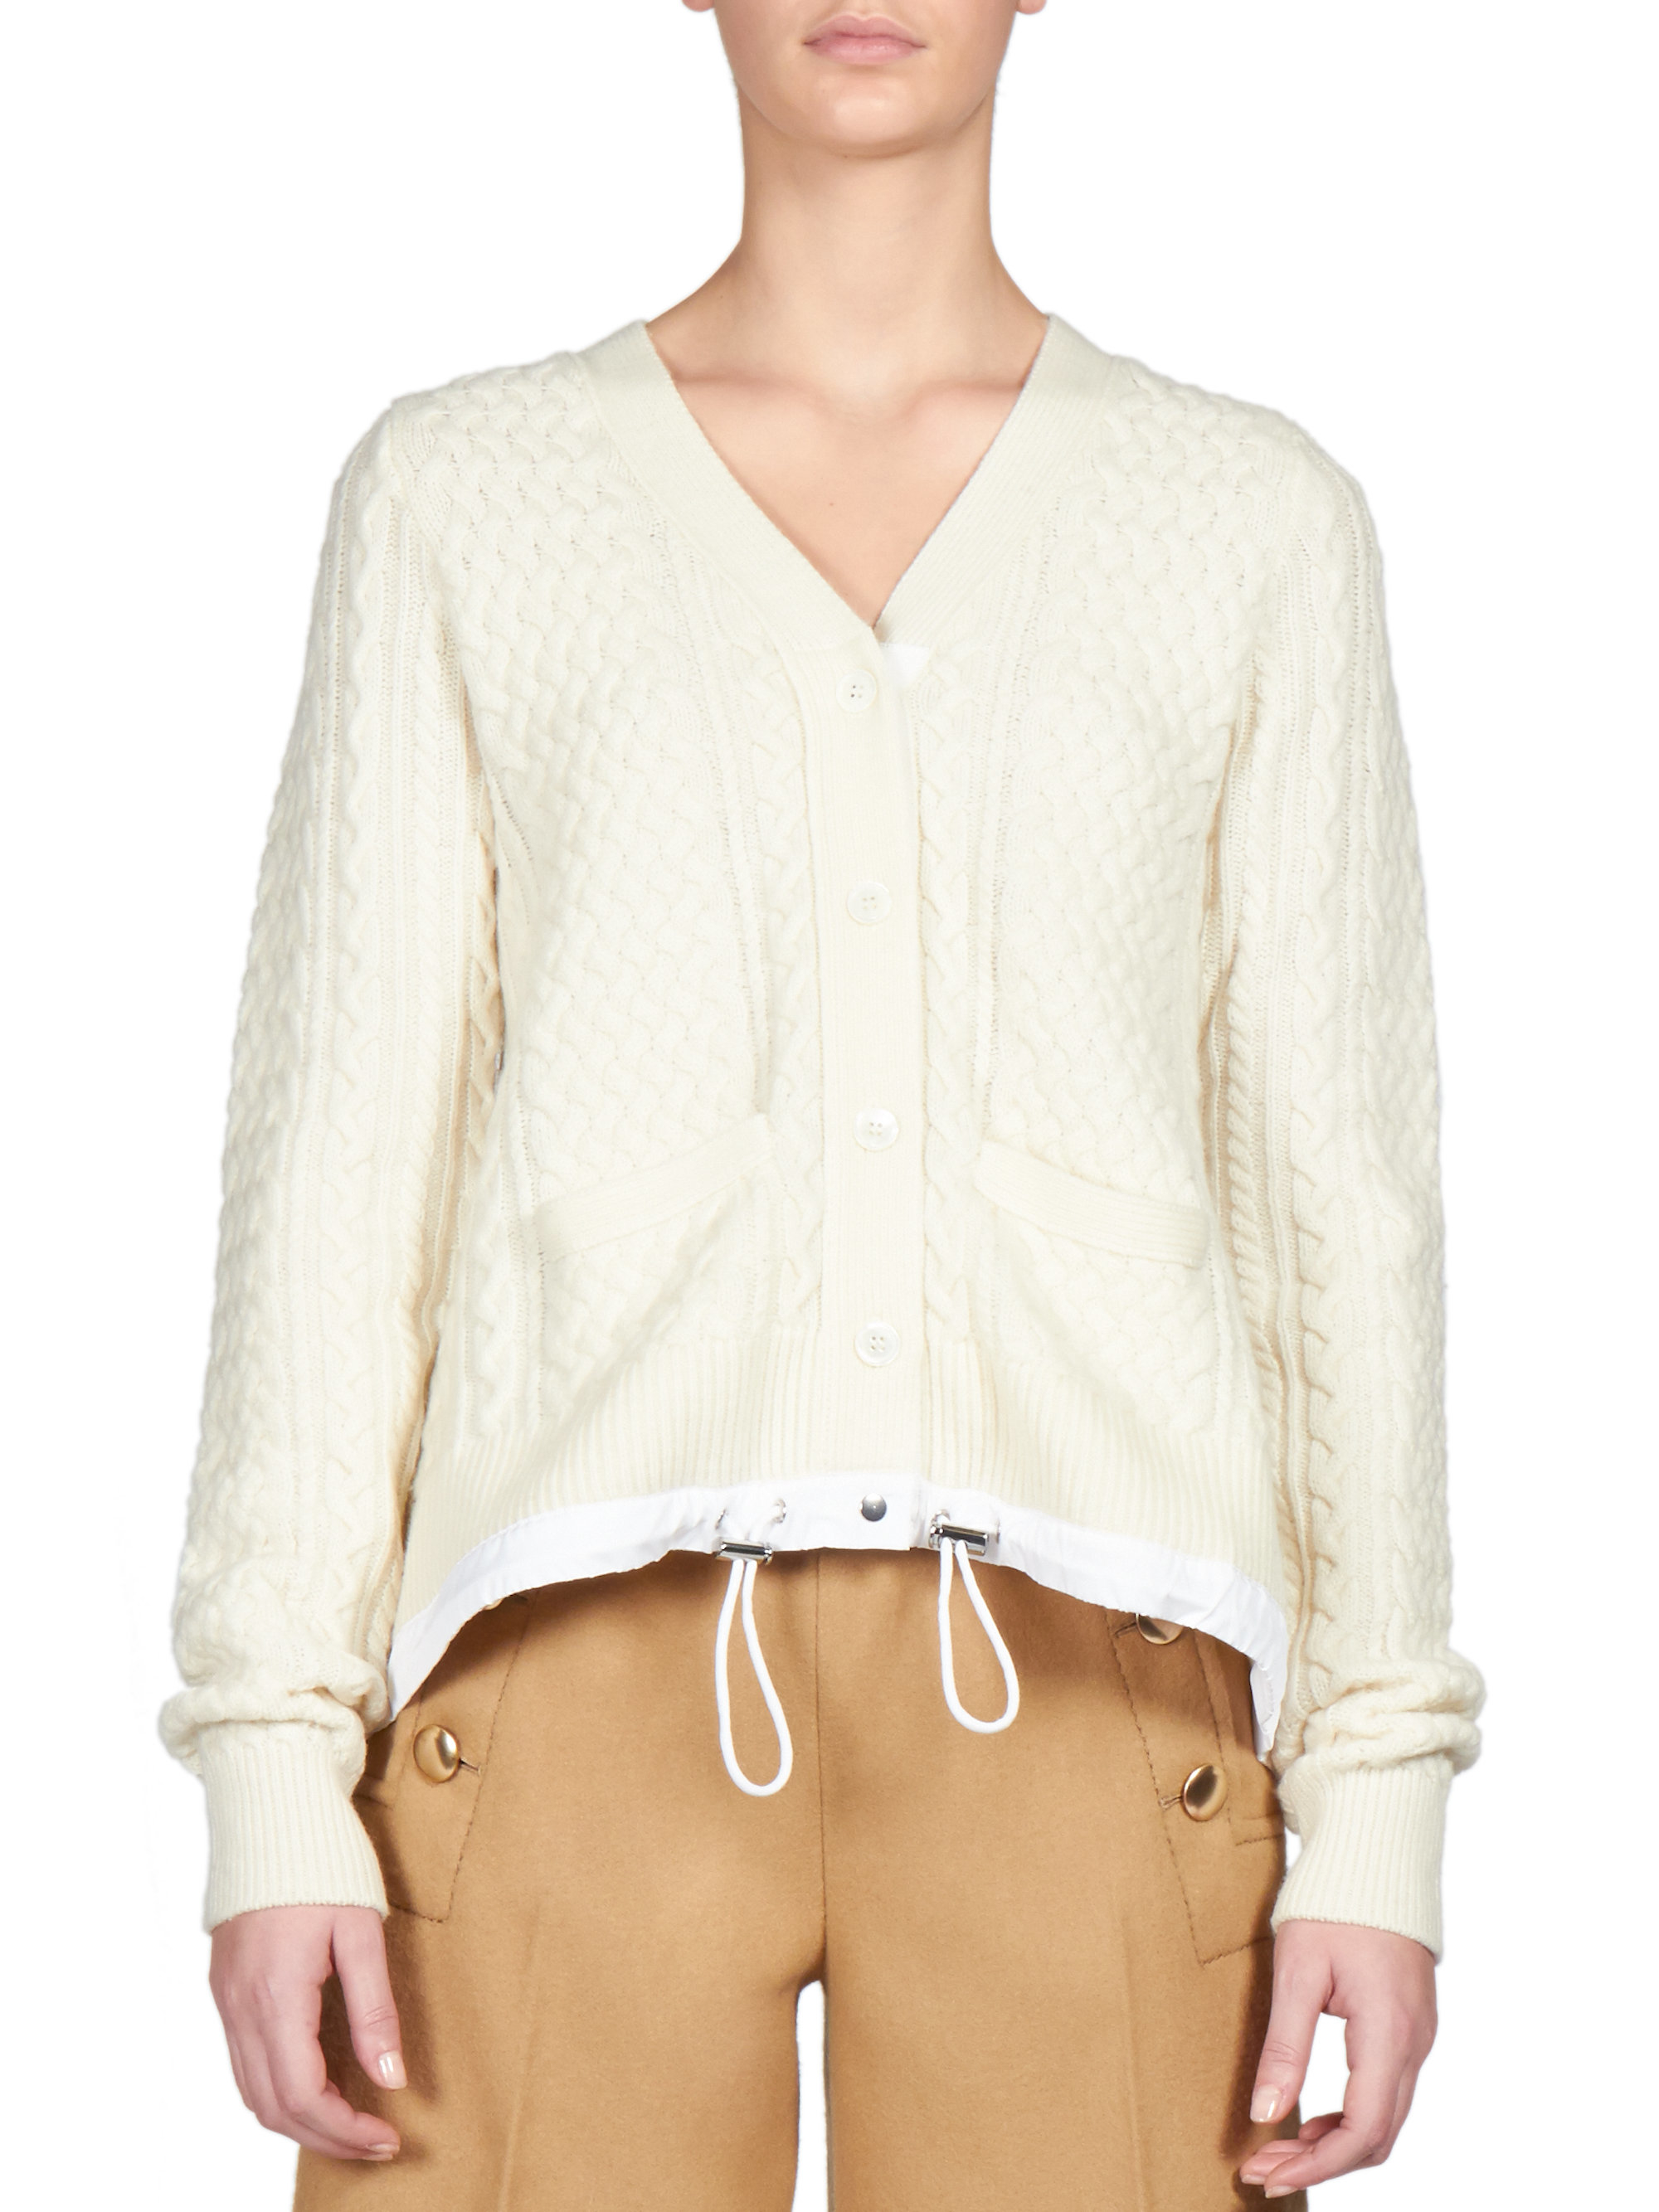 Sacai Luck Drawstring Cable-knit Cardigan in White | Lyst